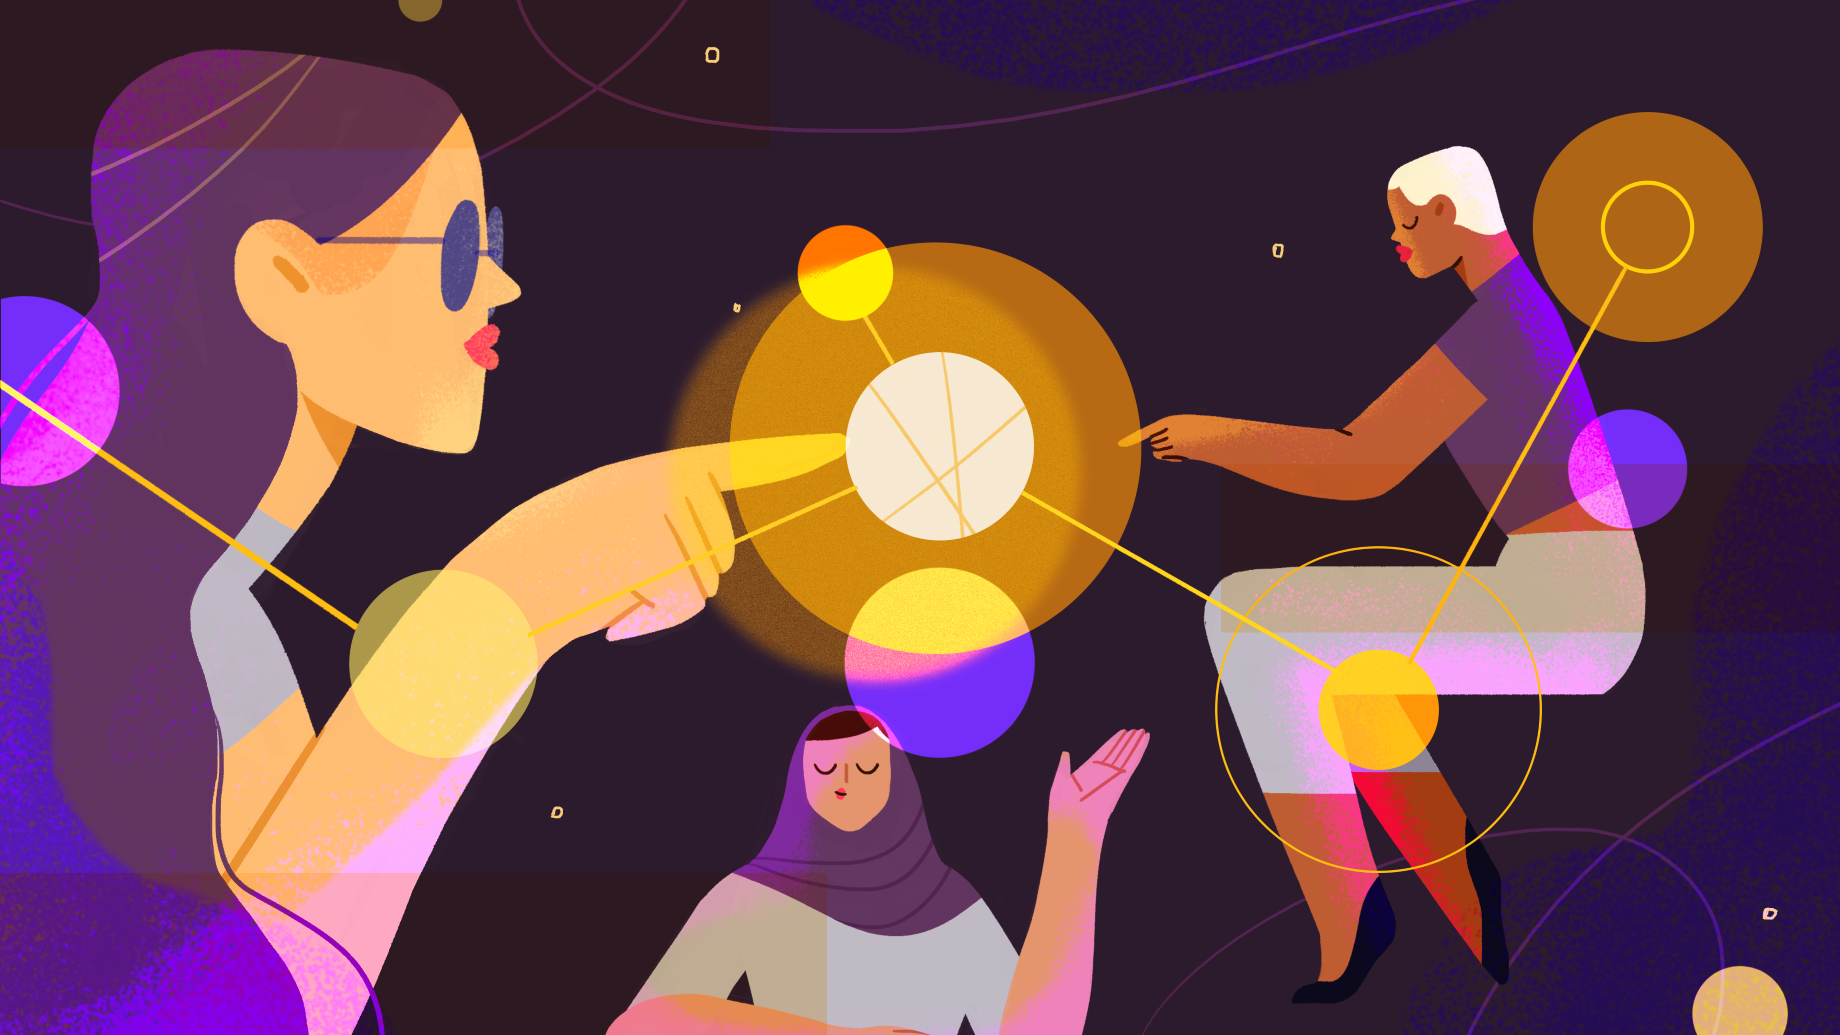 The 11 most influential women in crypto